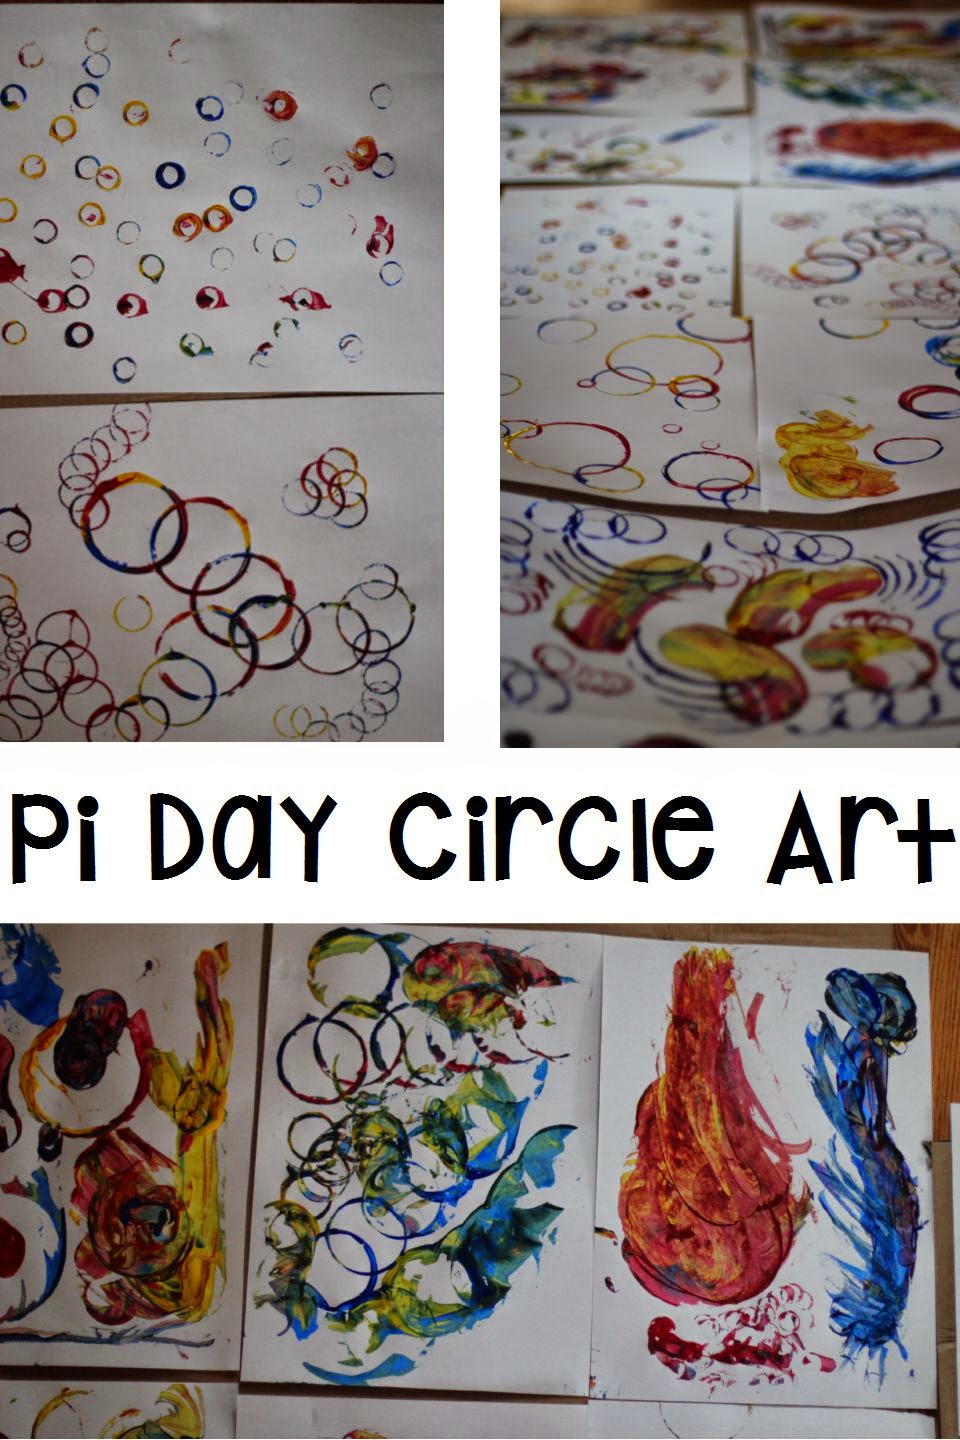 Pi Day Circle Art